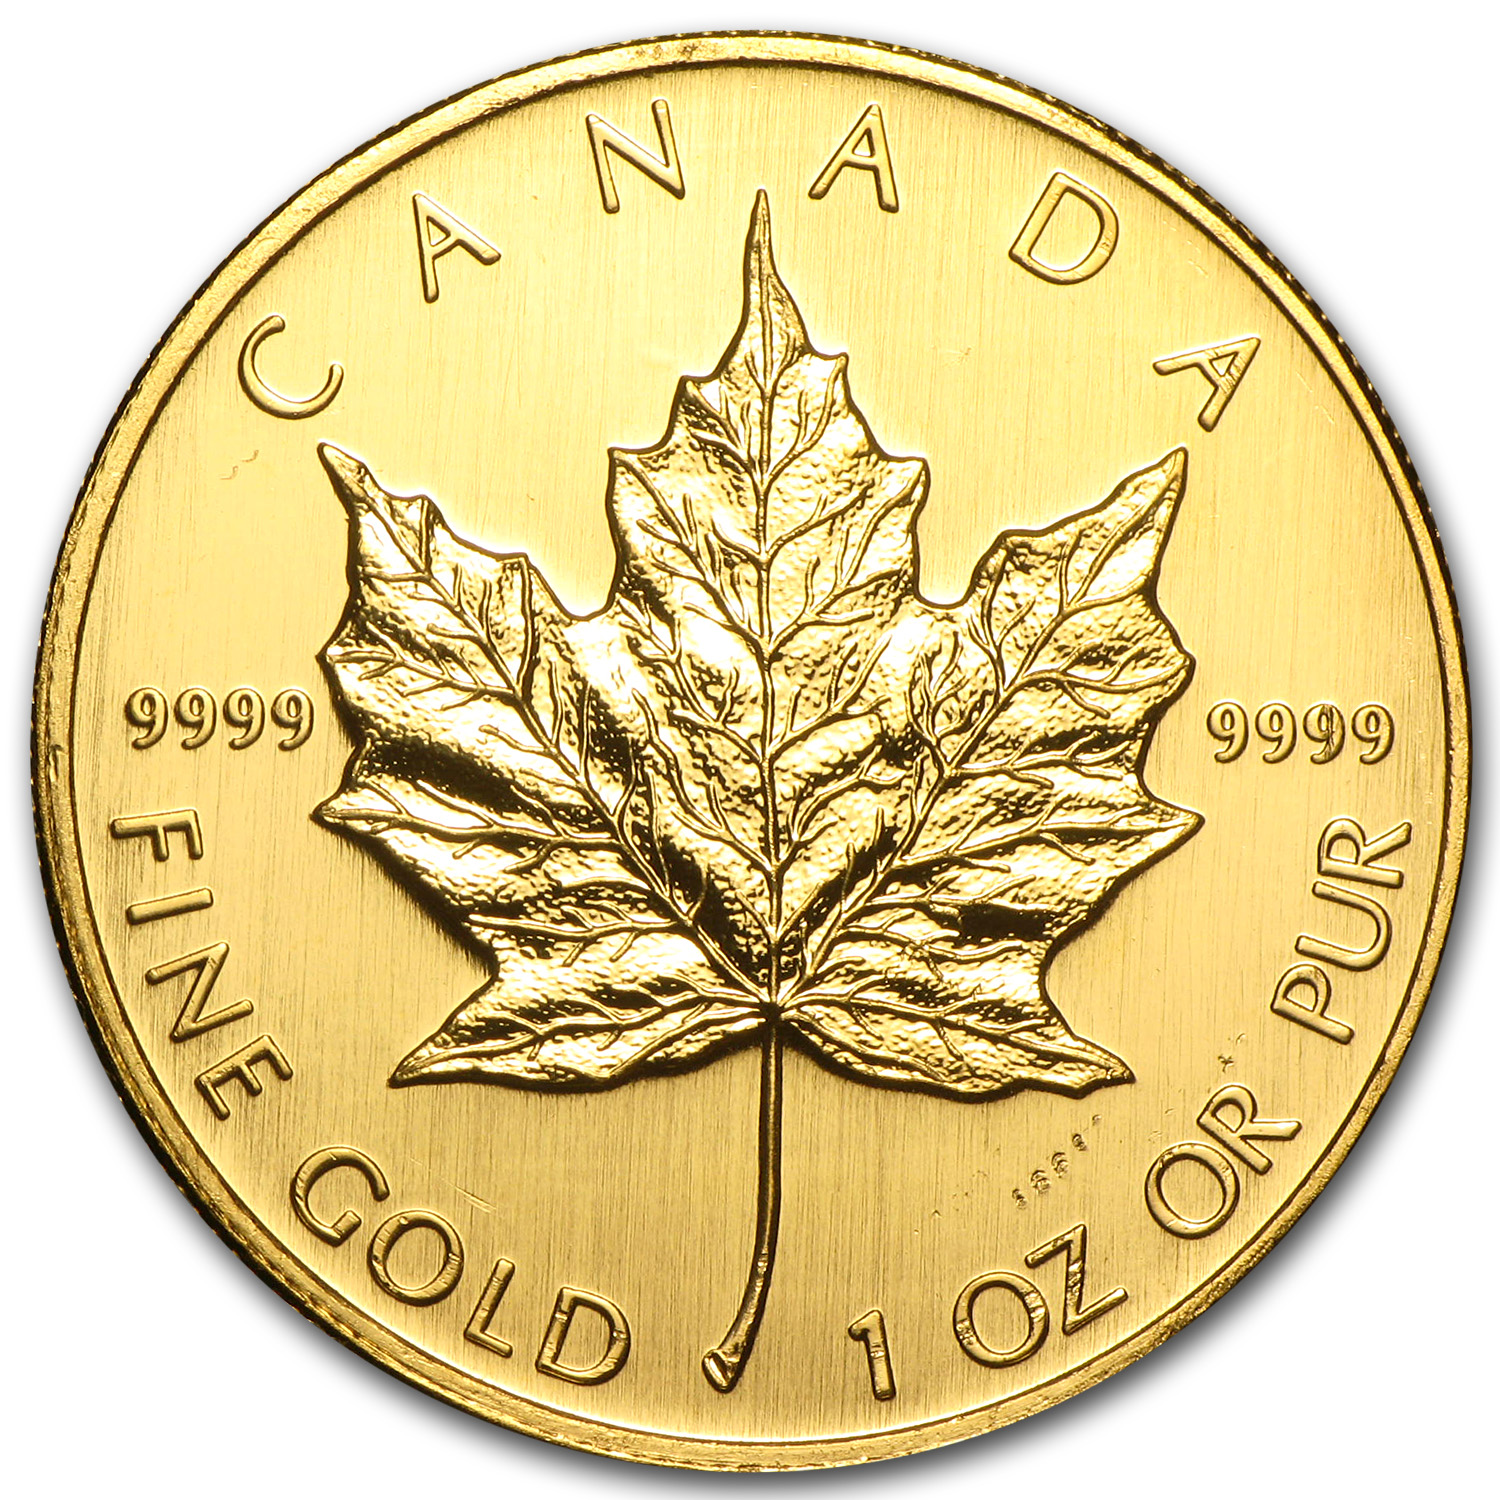 2007 Canada 1 oz Gold Maple Leaf BU